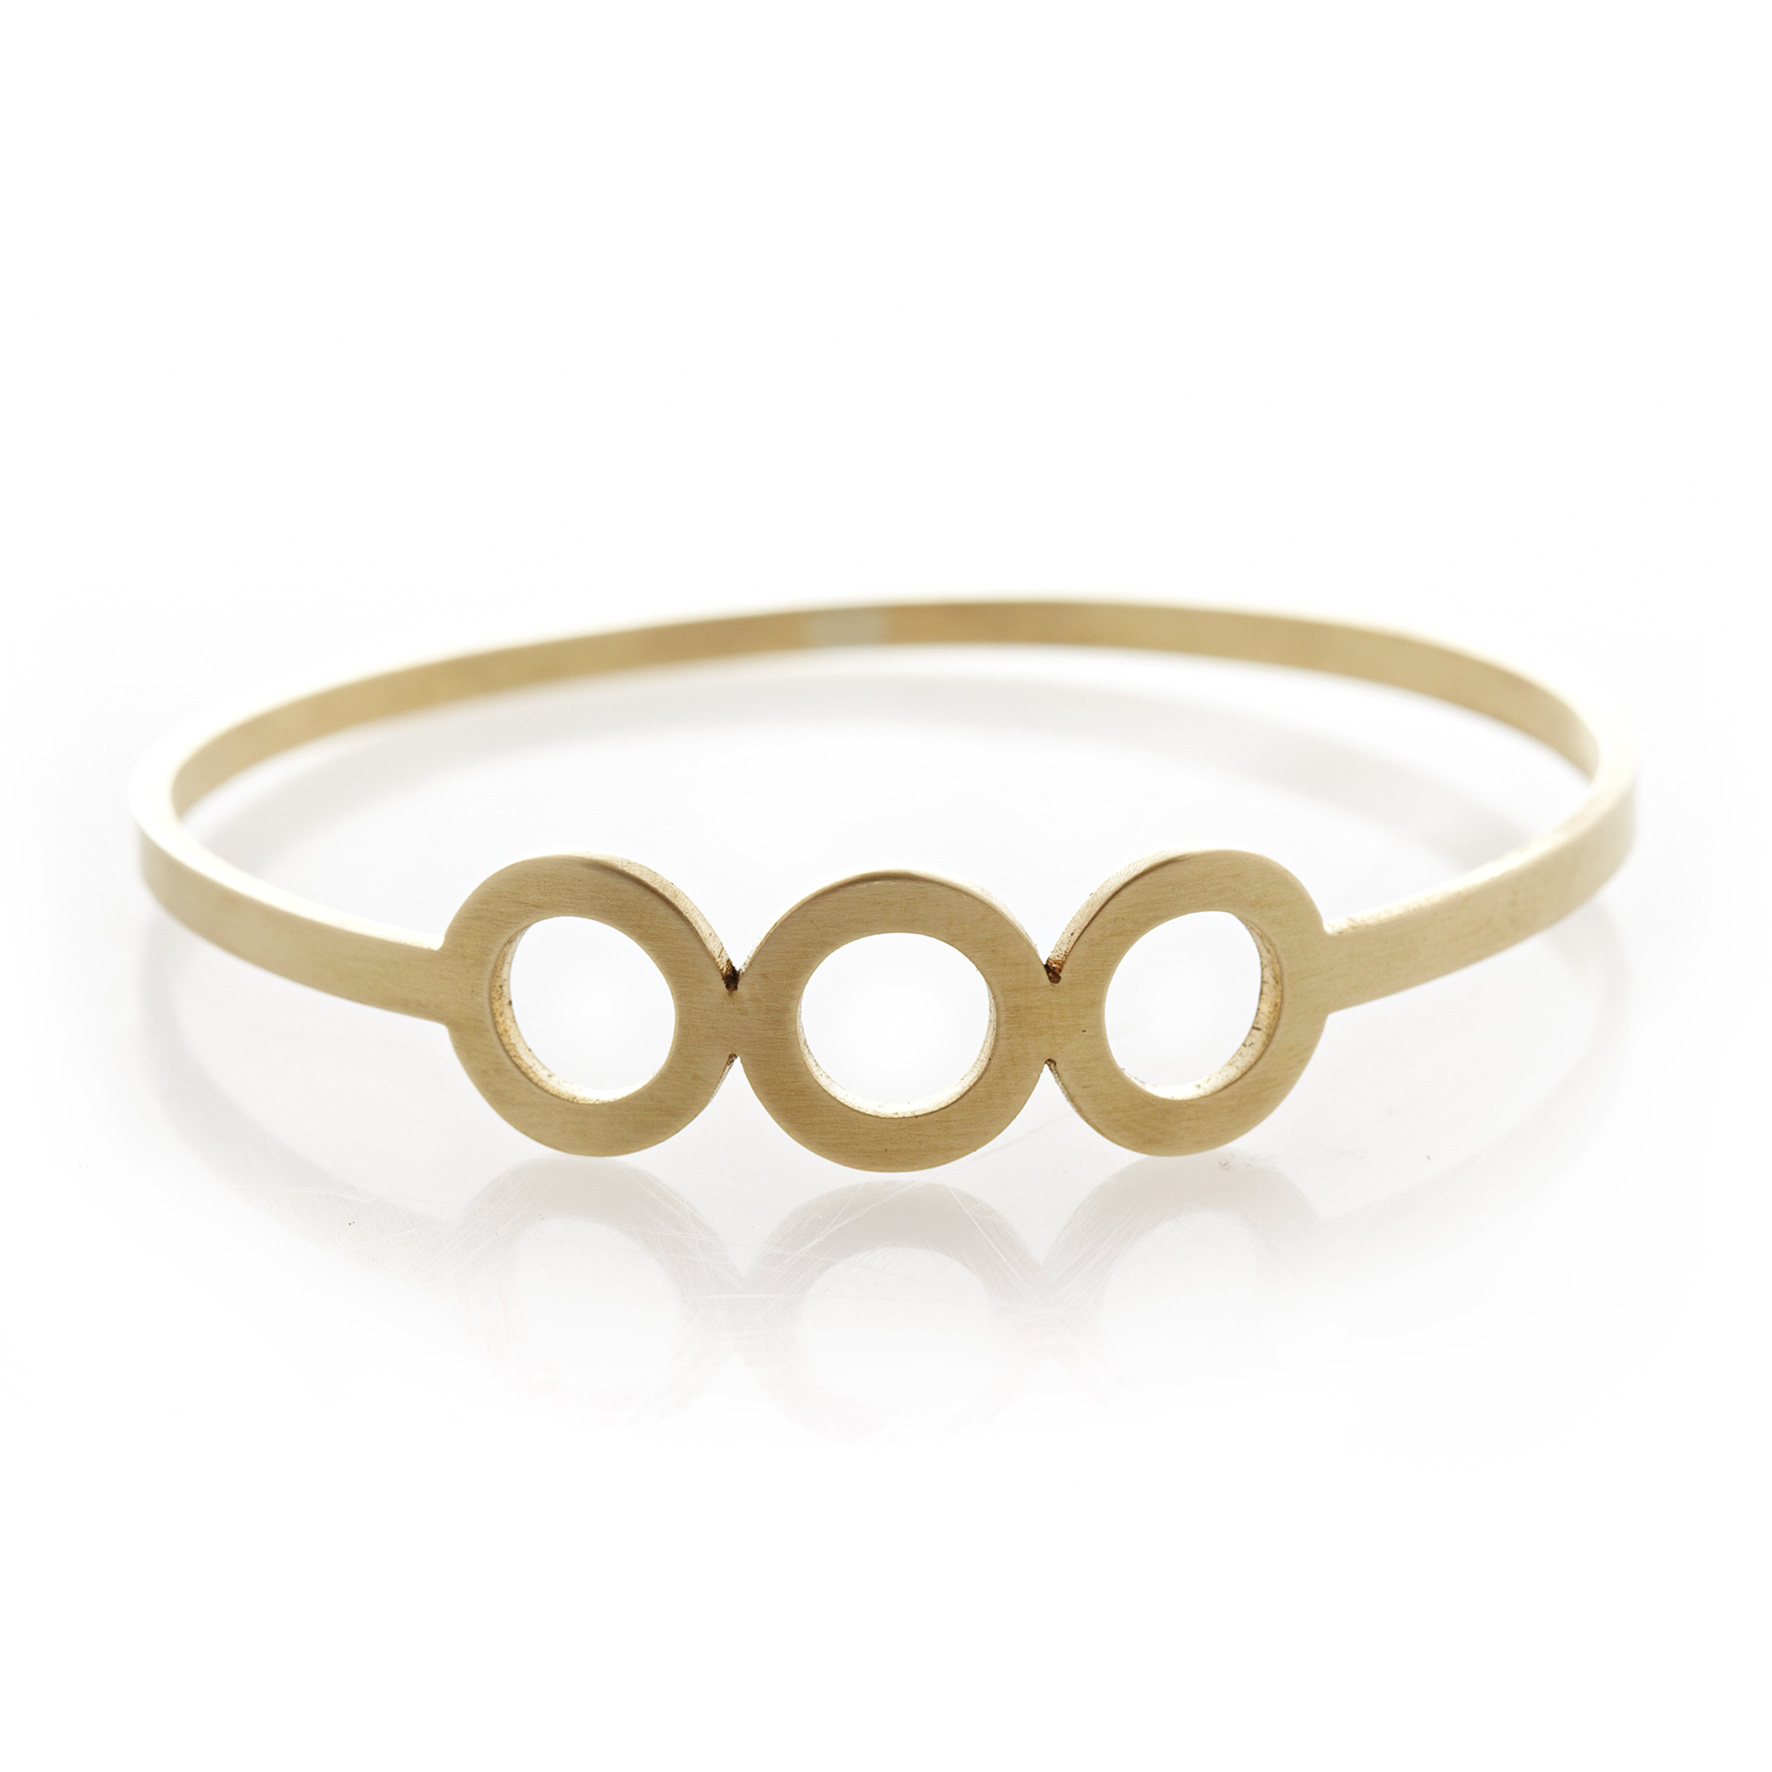 Tryptic circle brass bangle